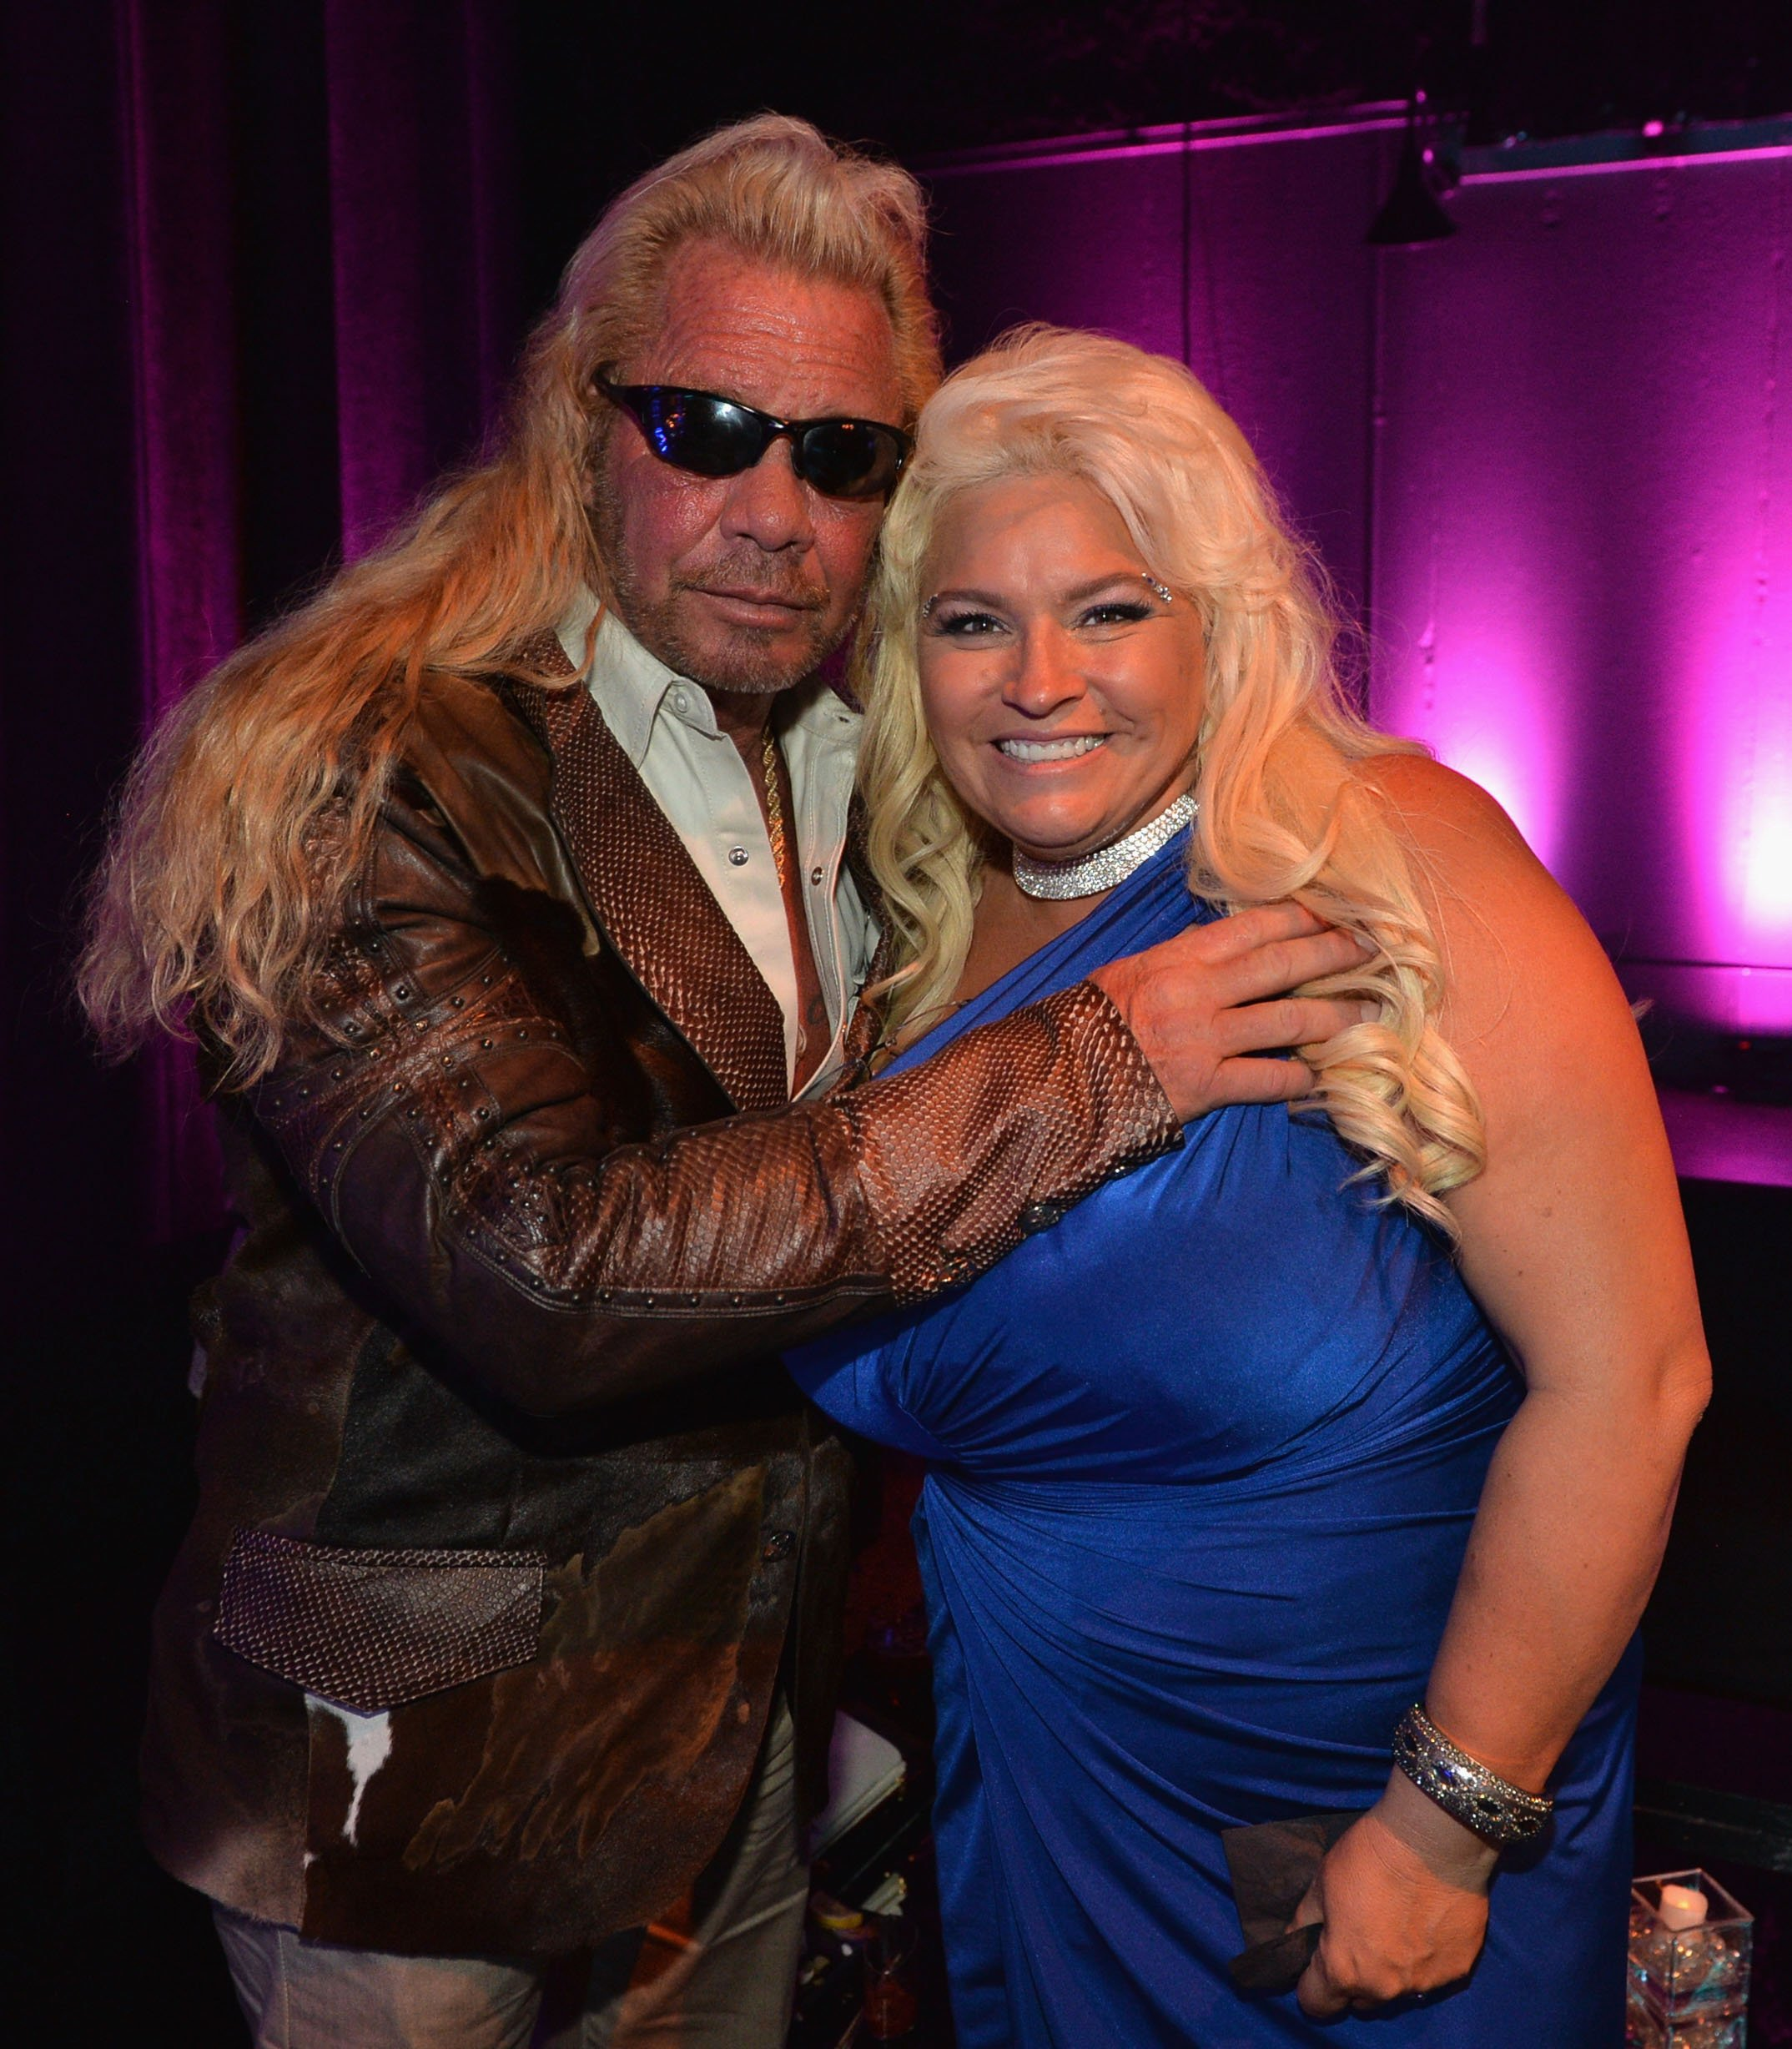 Beth and Duane Chapman on June 5, 2013 in Nashville, Tennessee | Photo: Getty Images